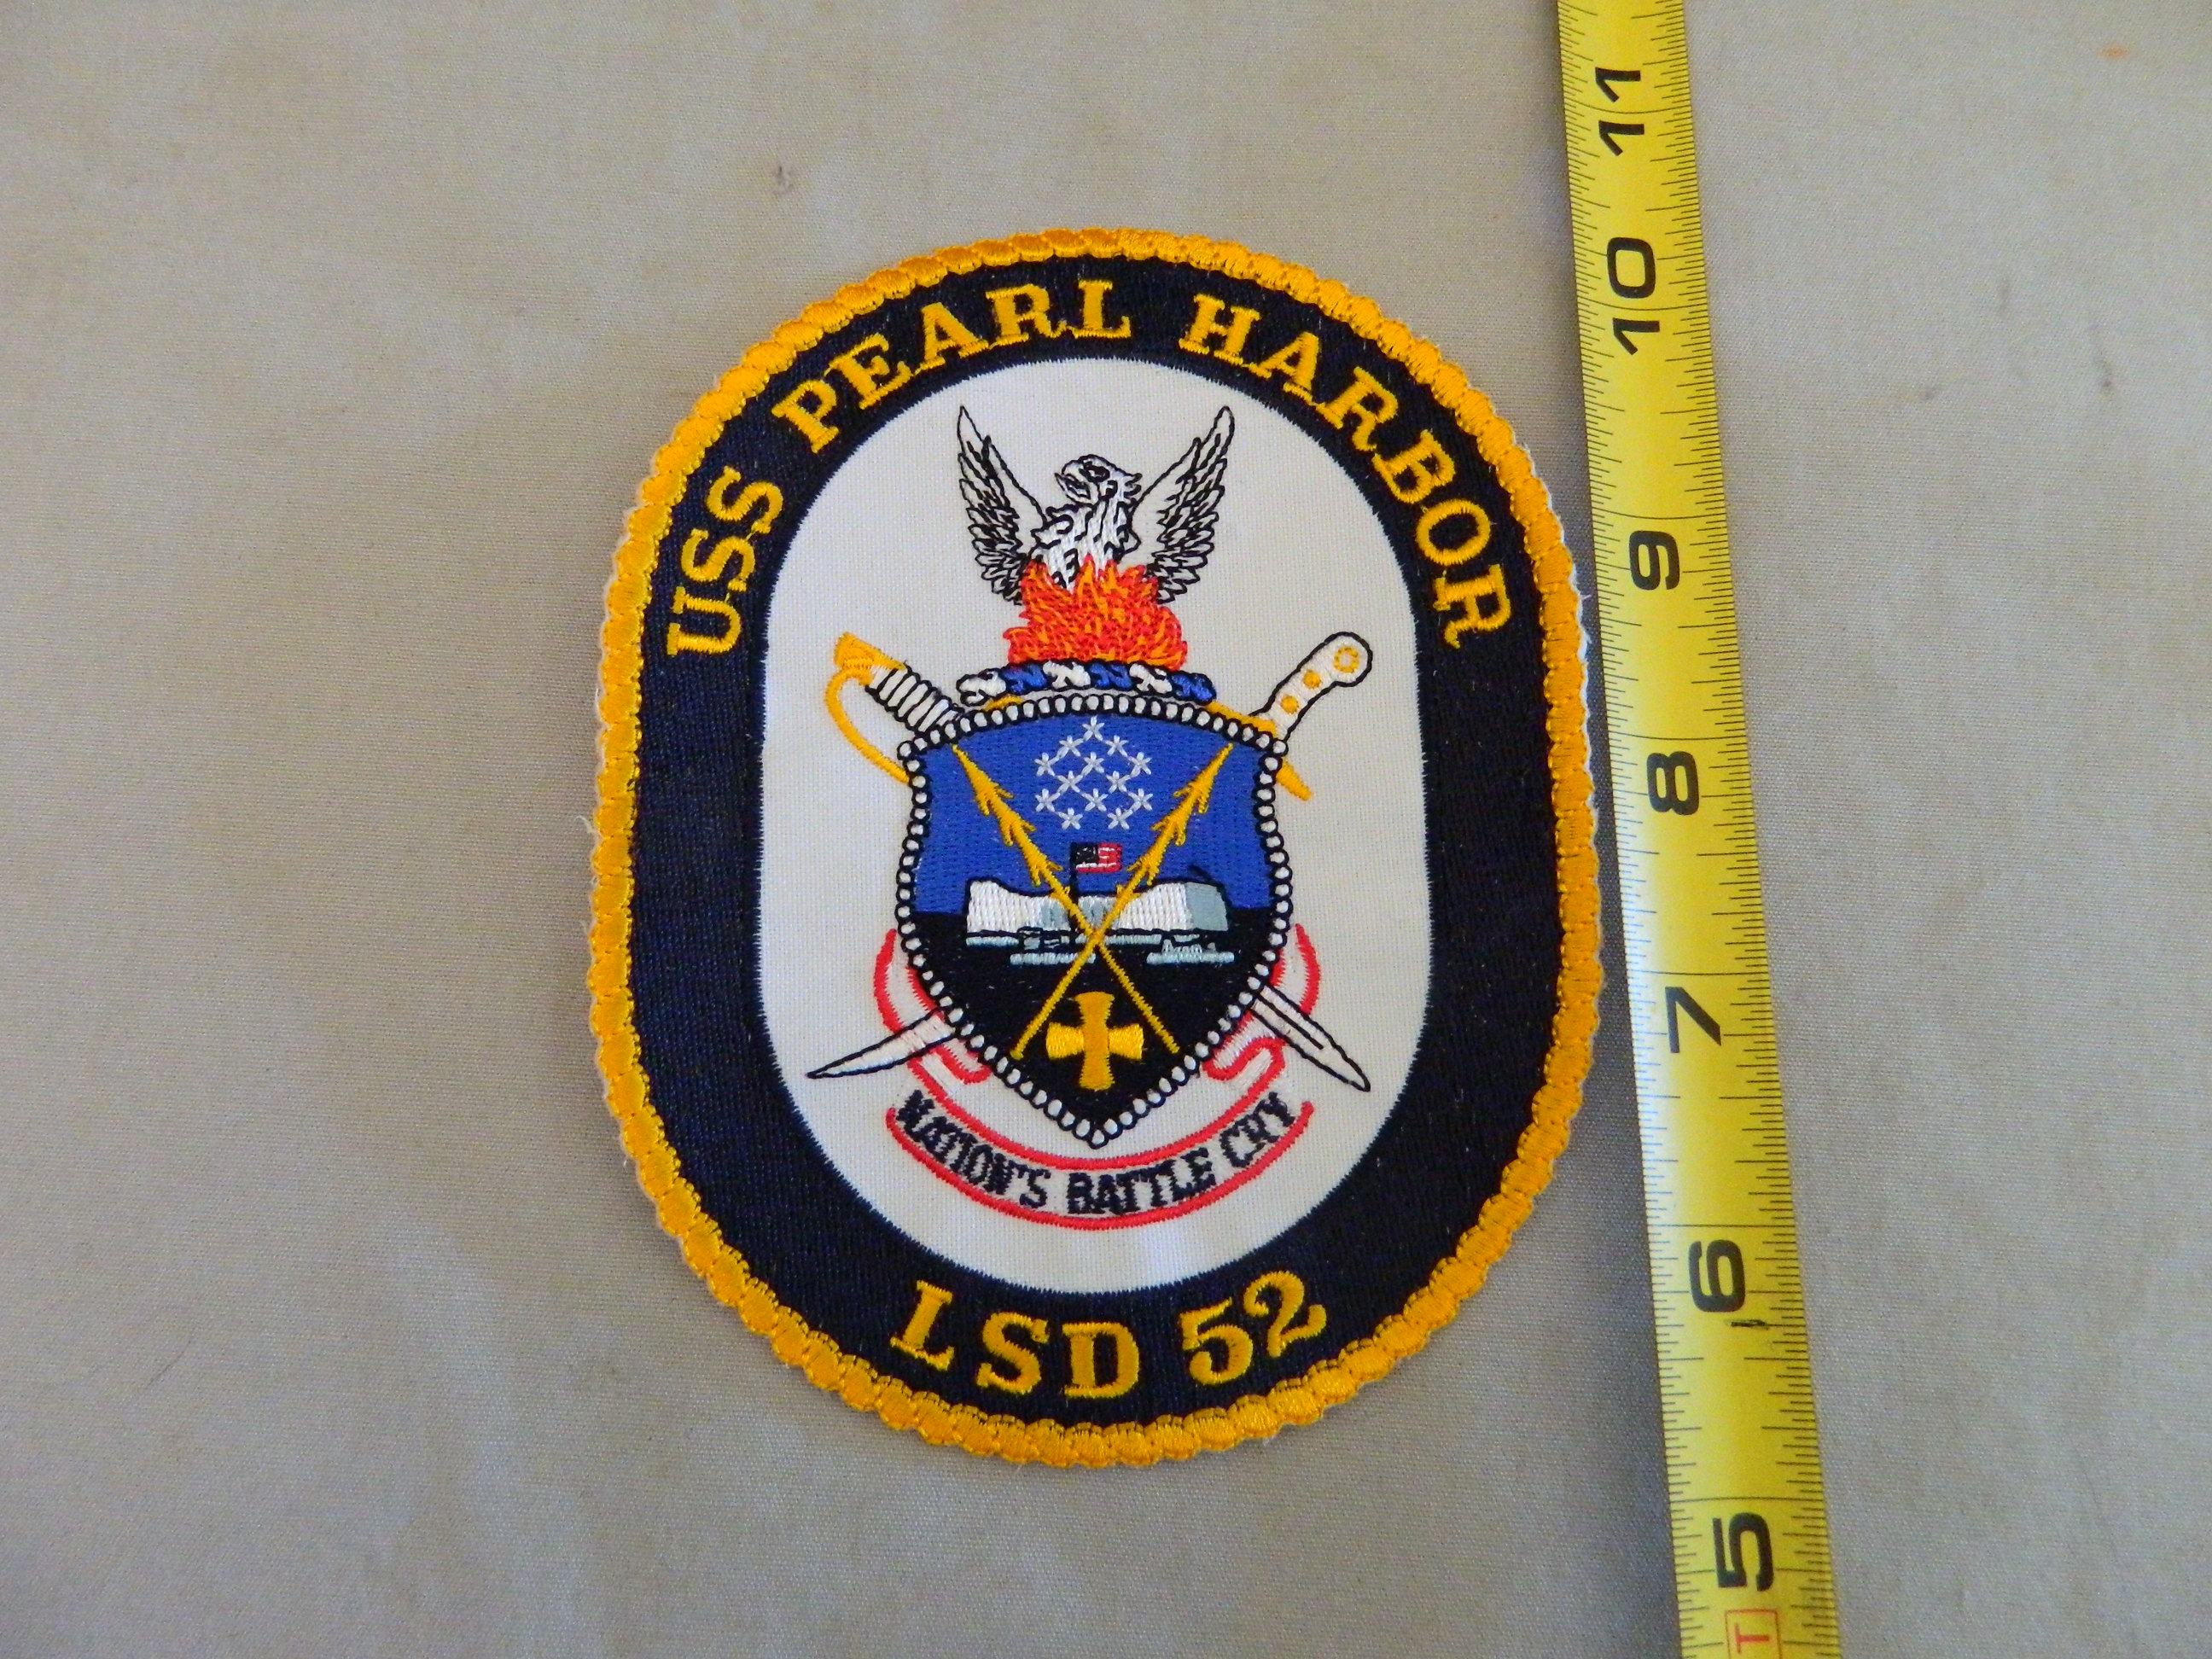 USN: USS PEARL HARBOR LSD 52- Color Patch